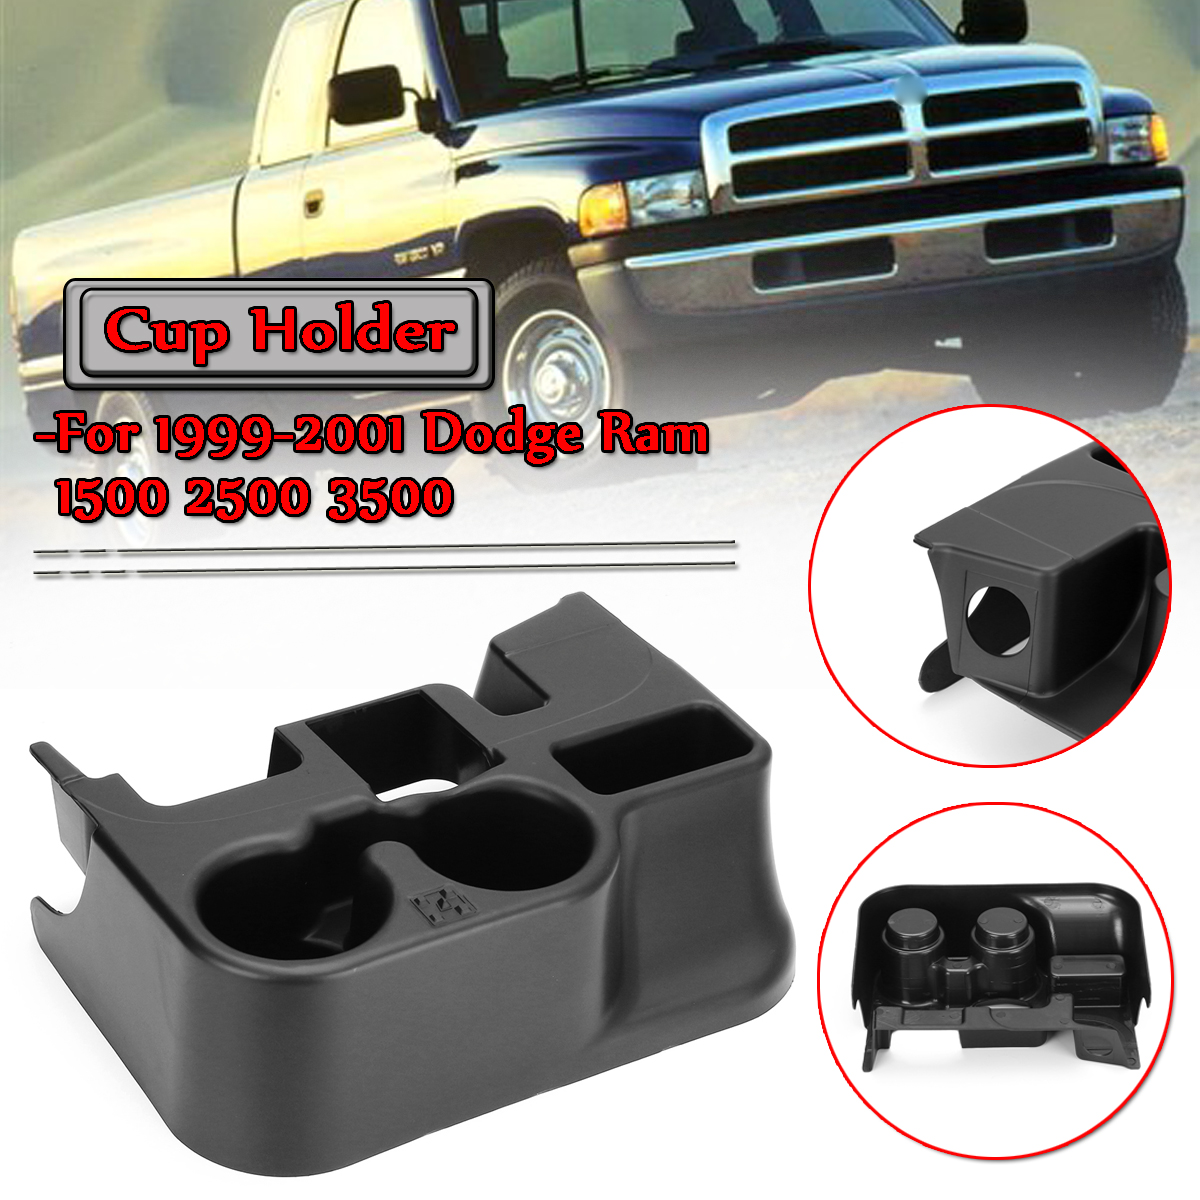 New Car Add on Cup Holder For Dodge 1999-2001 Ram 1500 Ram 2500 Ram 3500 Passenger Black Door Drinks Holder Adapter SS281AZAA bruder пикап ram 2500